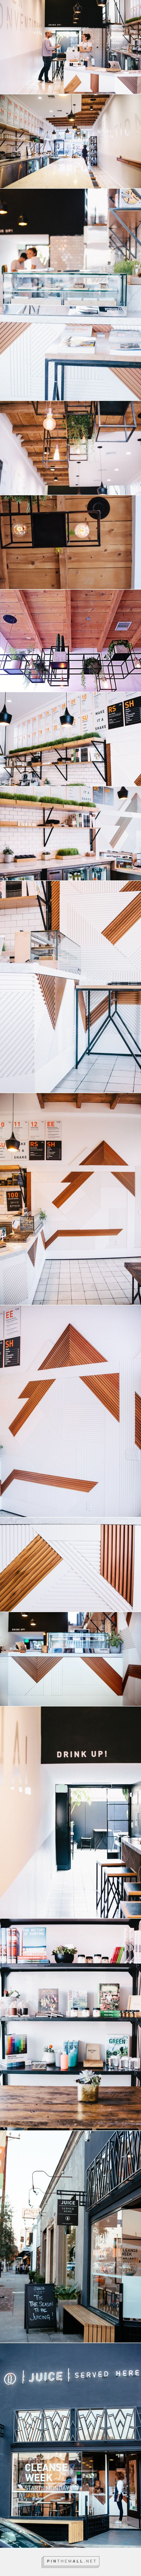 A Modern Juice Bar Designed by Bells & Whistles - Design Milk... - a grouped images picture - Pin Them All